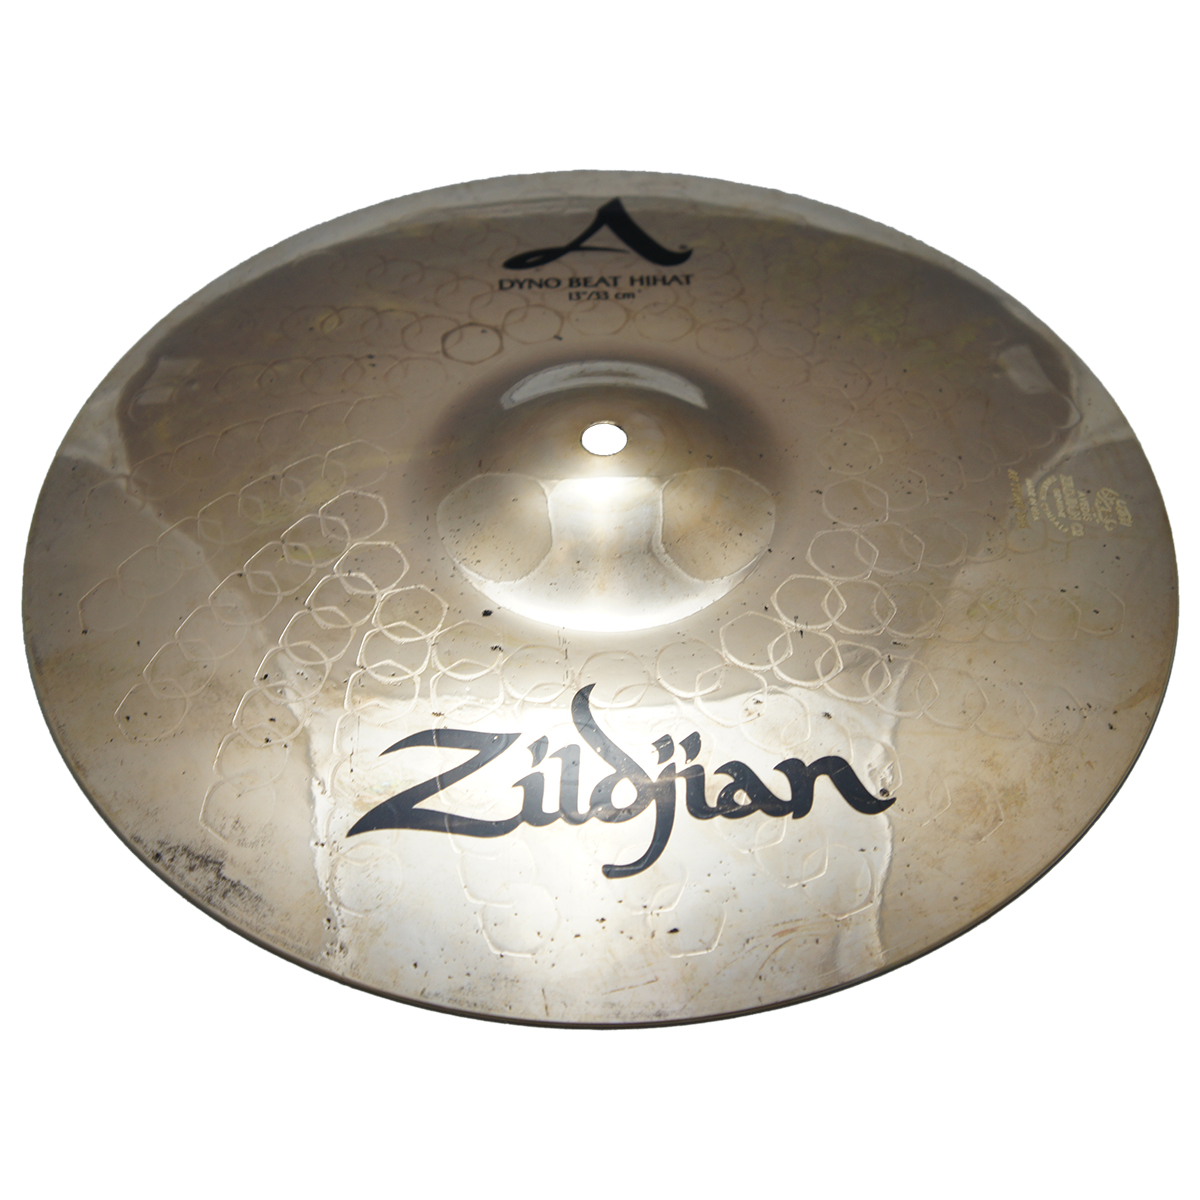 "Zildjian 13"" Z Custom Z3 Series Dyno Beat Bottom Hi Hat Extra Heavy Drumset Cast Bronze Cymbal with Bright Sound and Small Bell Size Z40131"